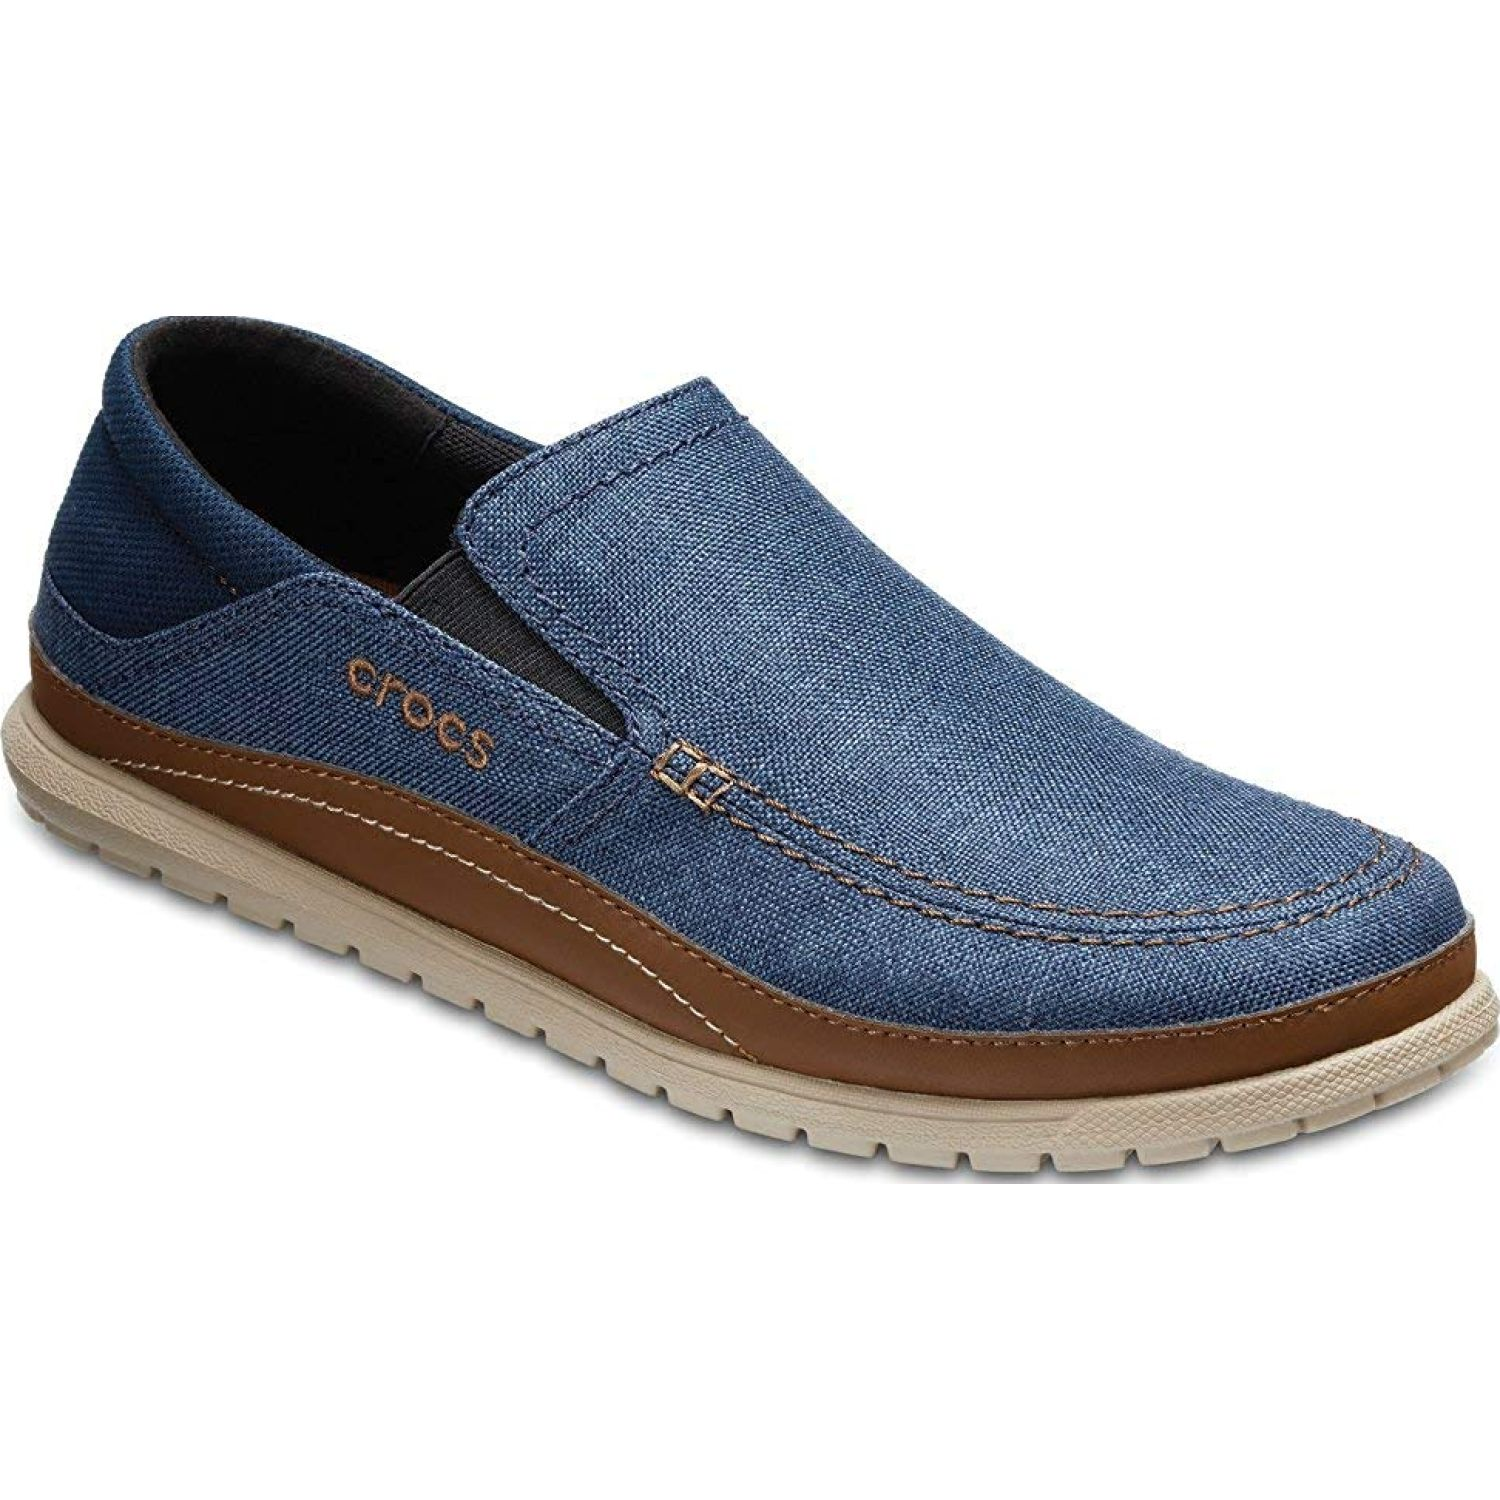 CROCS men's santa cruz playa slip-on Navy Oxfords